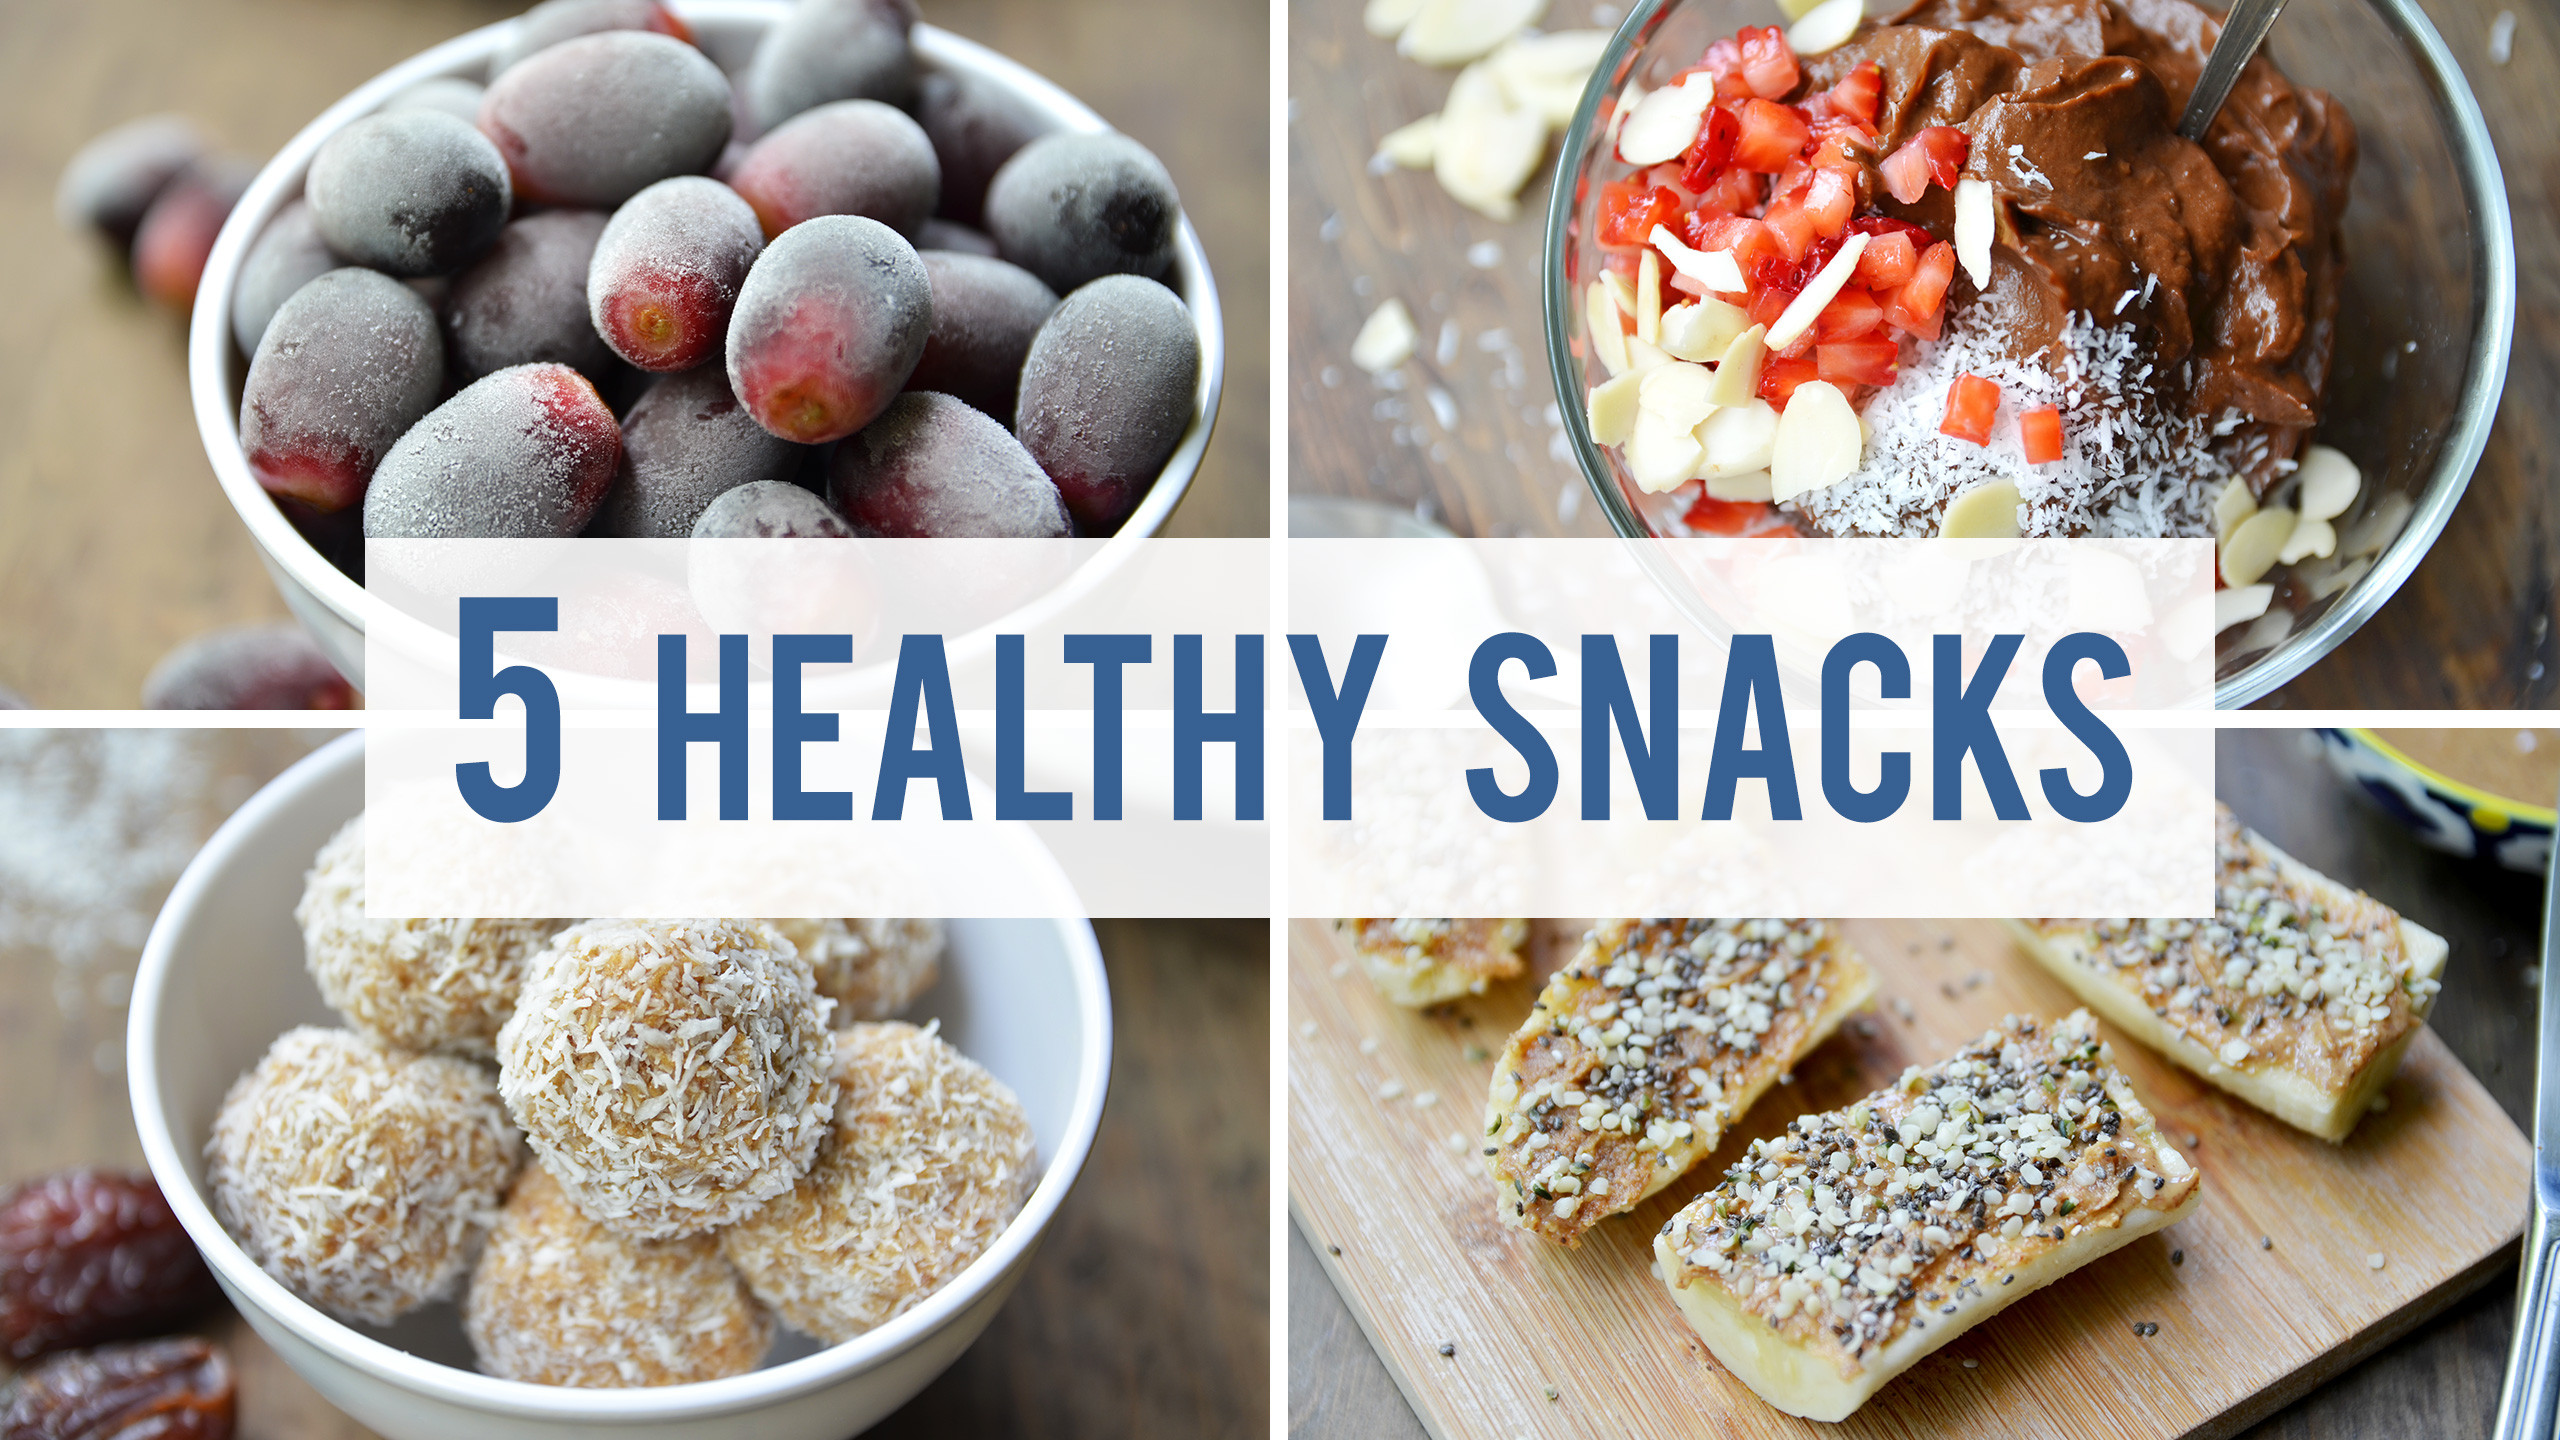 Healthy Sweet Snacks  5 Healthy Snacks For Your Sweet Tooth Fablunch